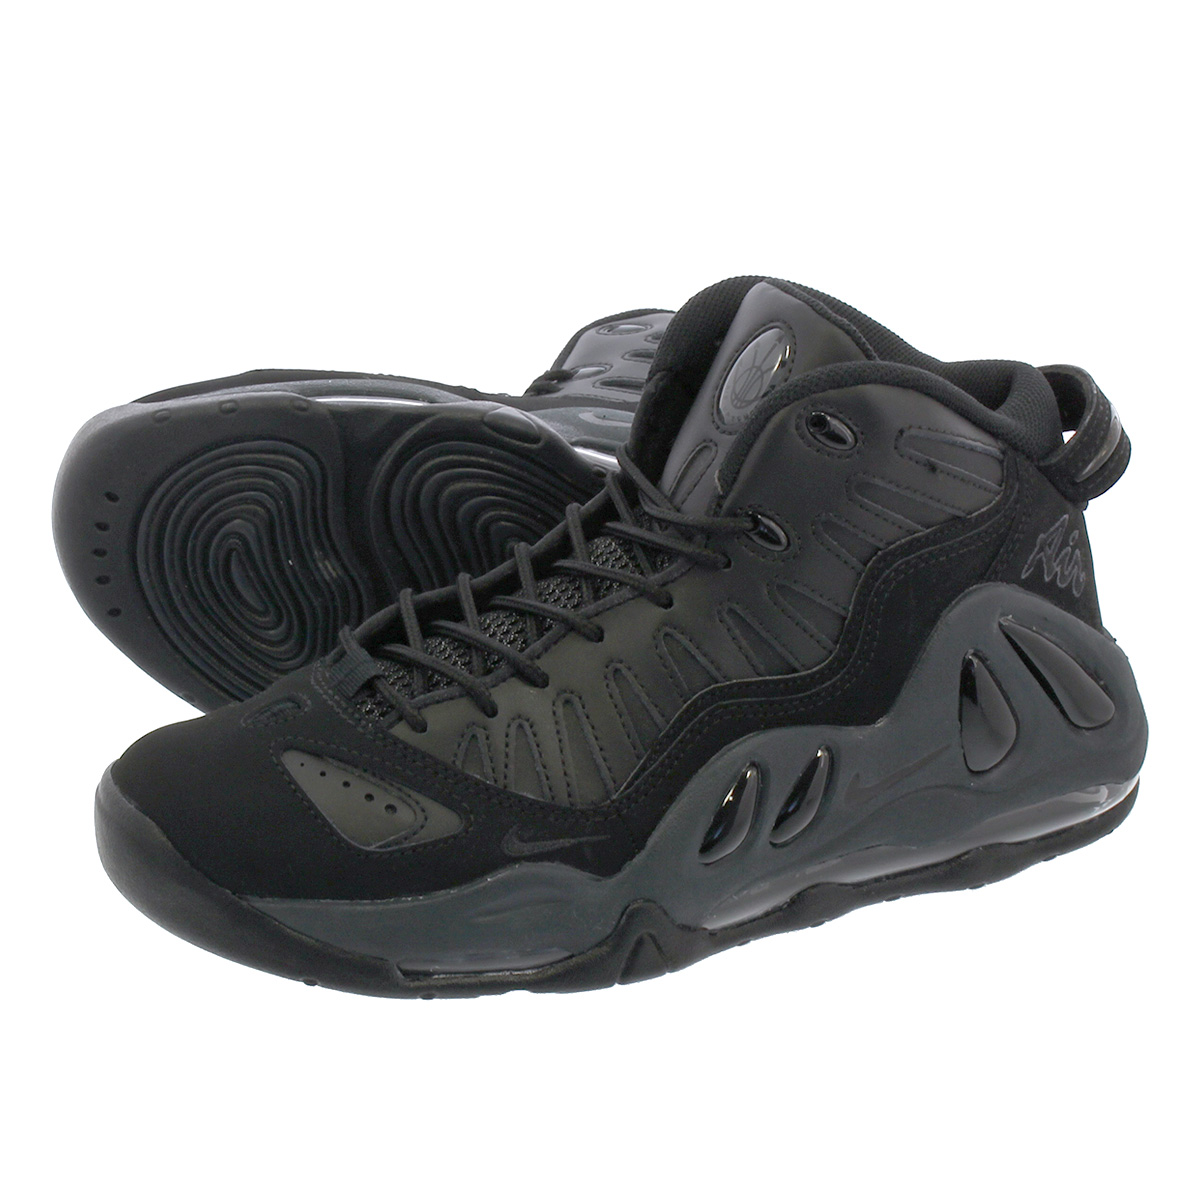 3e8192564003e1 LOWTEX PLUS  NIKE AIR MAX UPTEMPO 97 Kie Ney AMAX up tempo 97  BLACK BLACK ANTHRAICTE BLACK 399